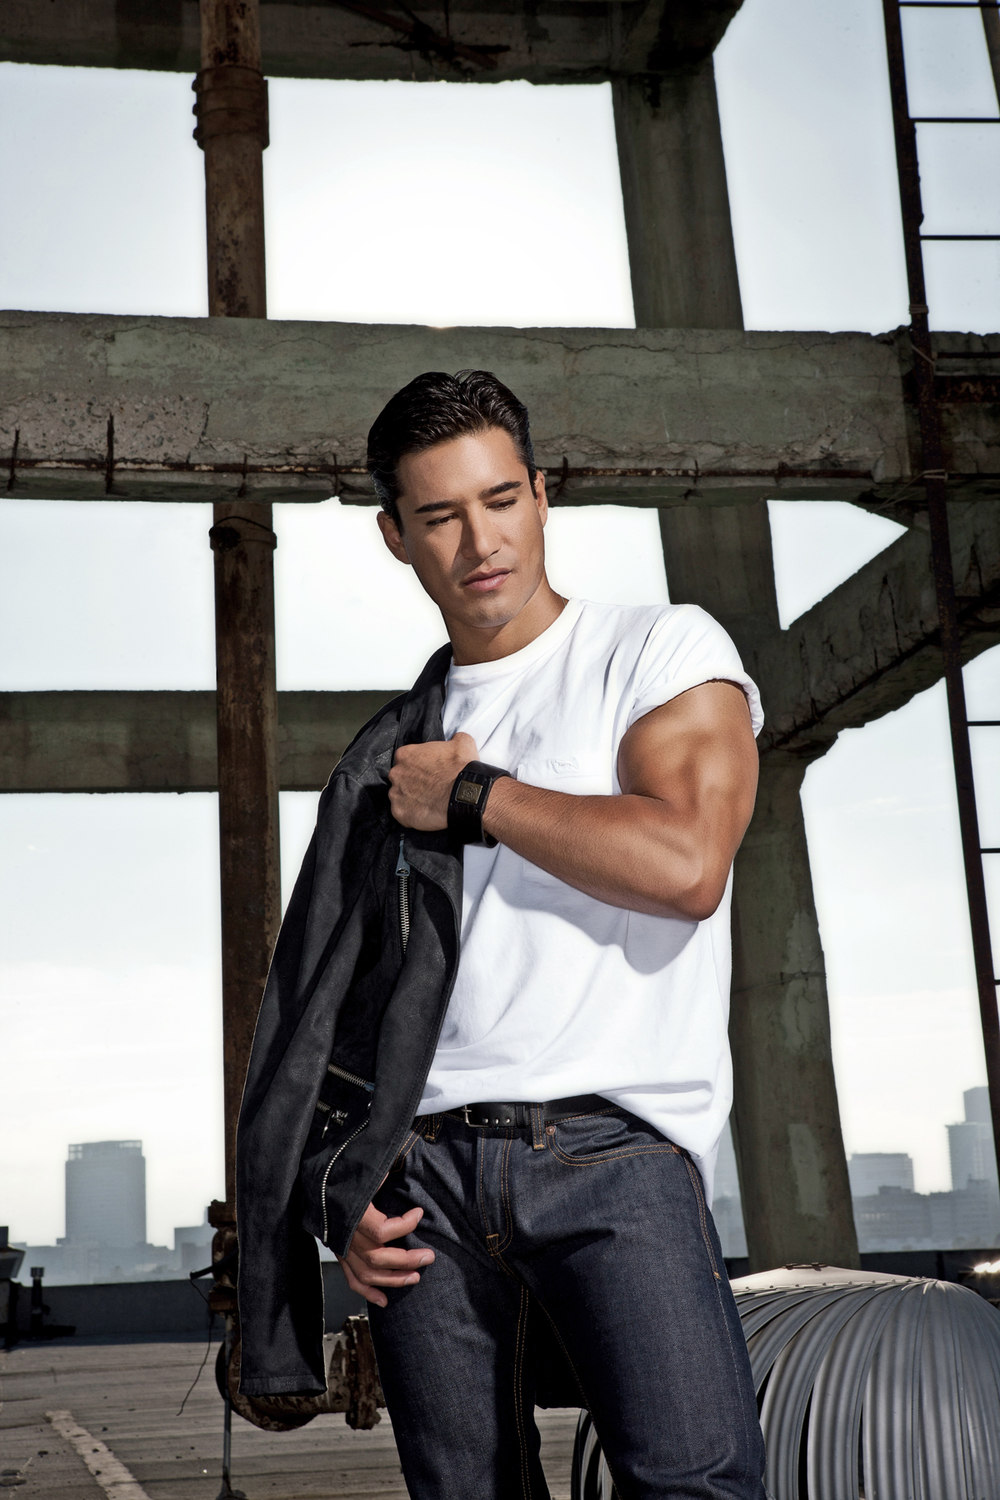 Mario Lopez Photographed by Bradford Rogne